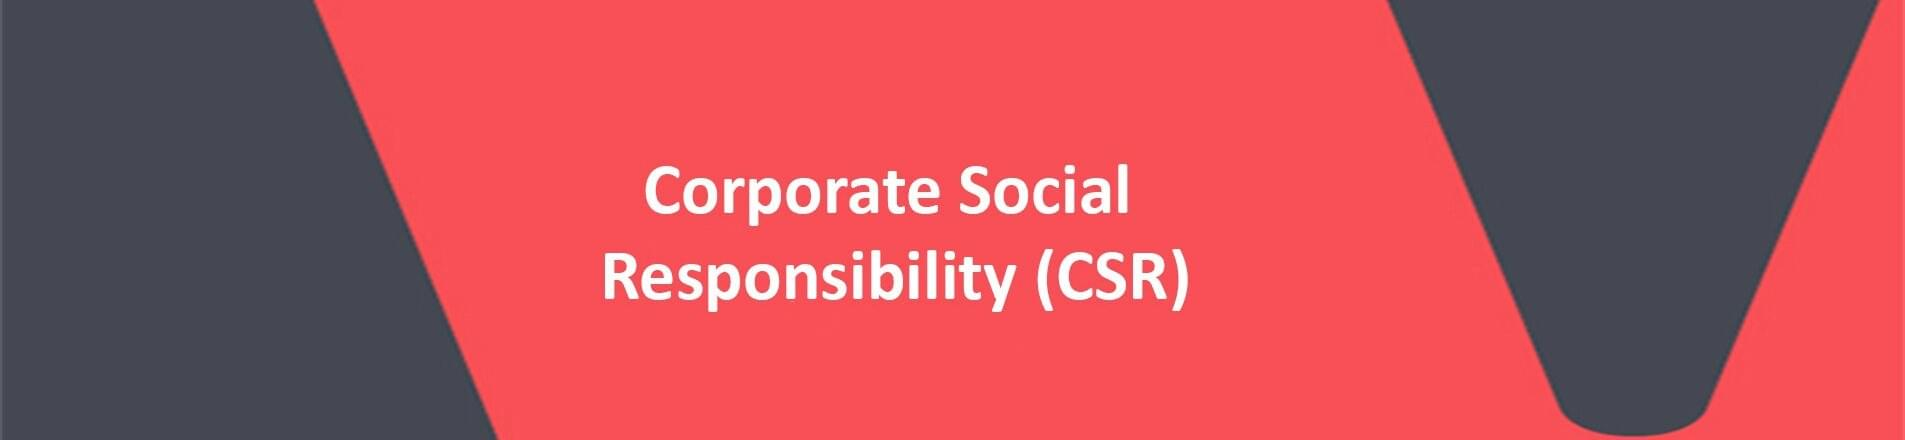 Corporate Social Responsibility.